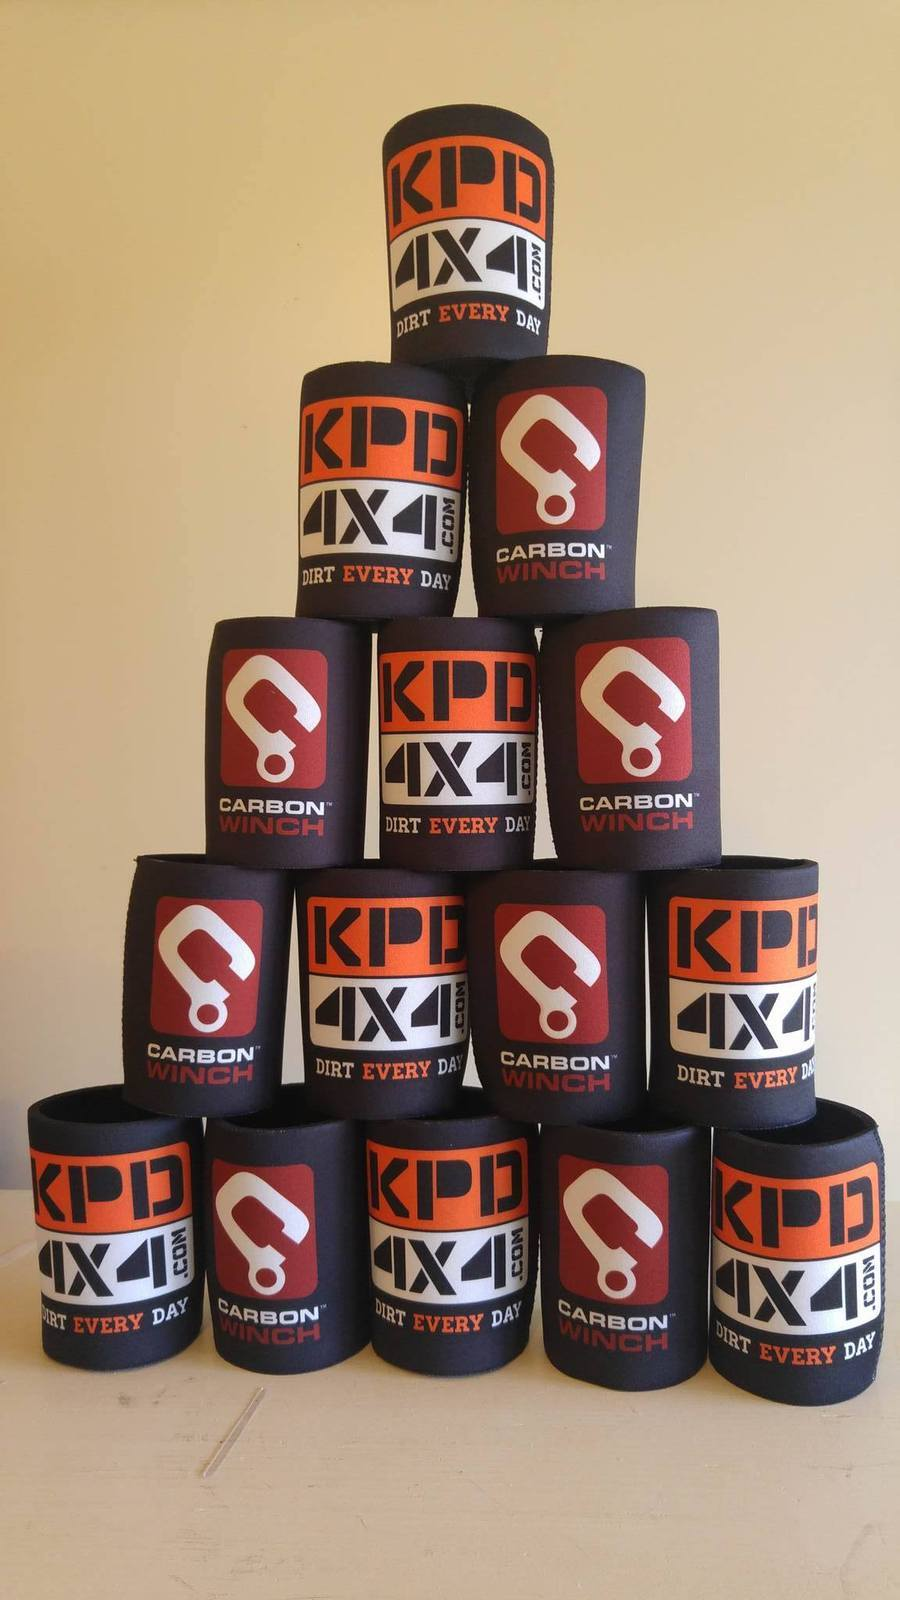 Stubby Holder With Kpd 4X4 & Carbon Winches Australia Logos Carbon Winch